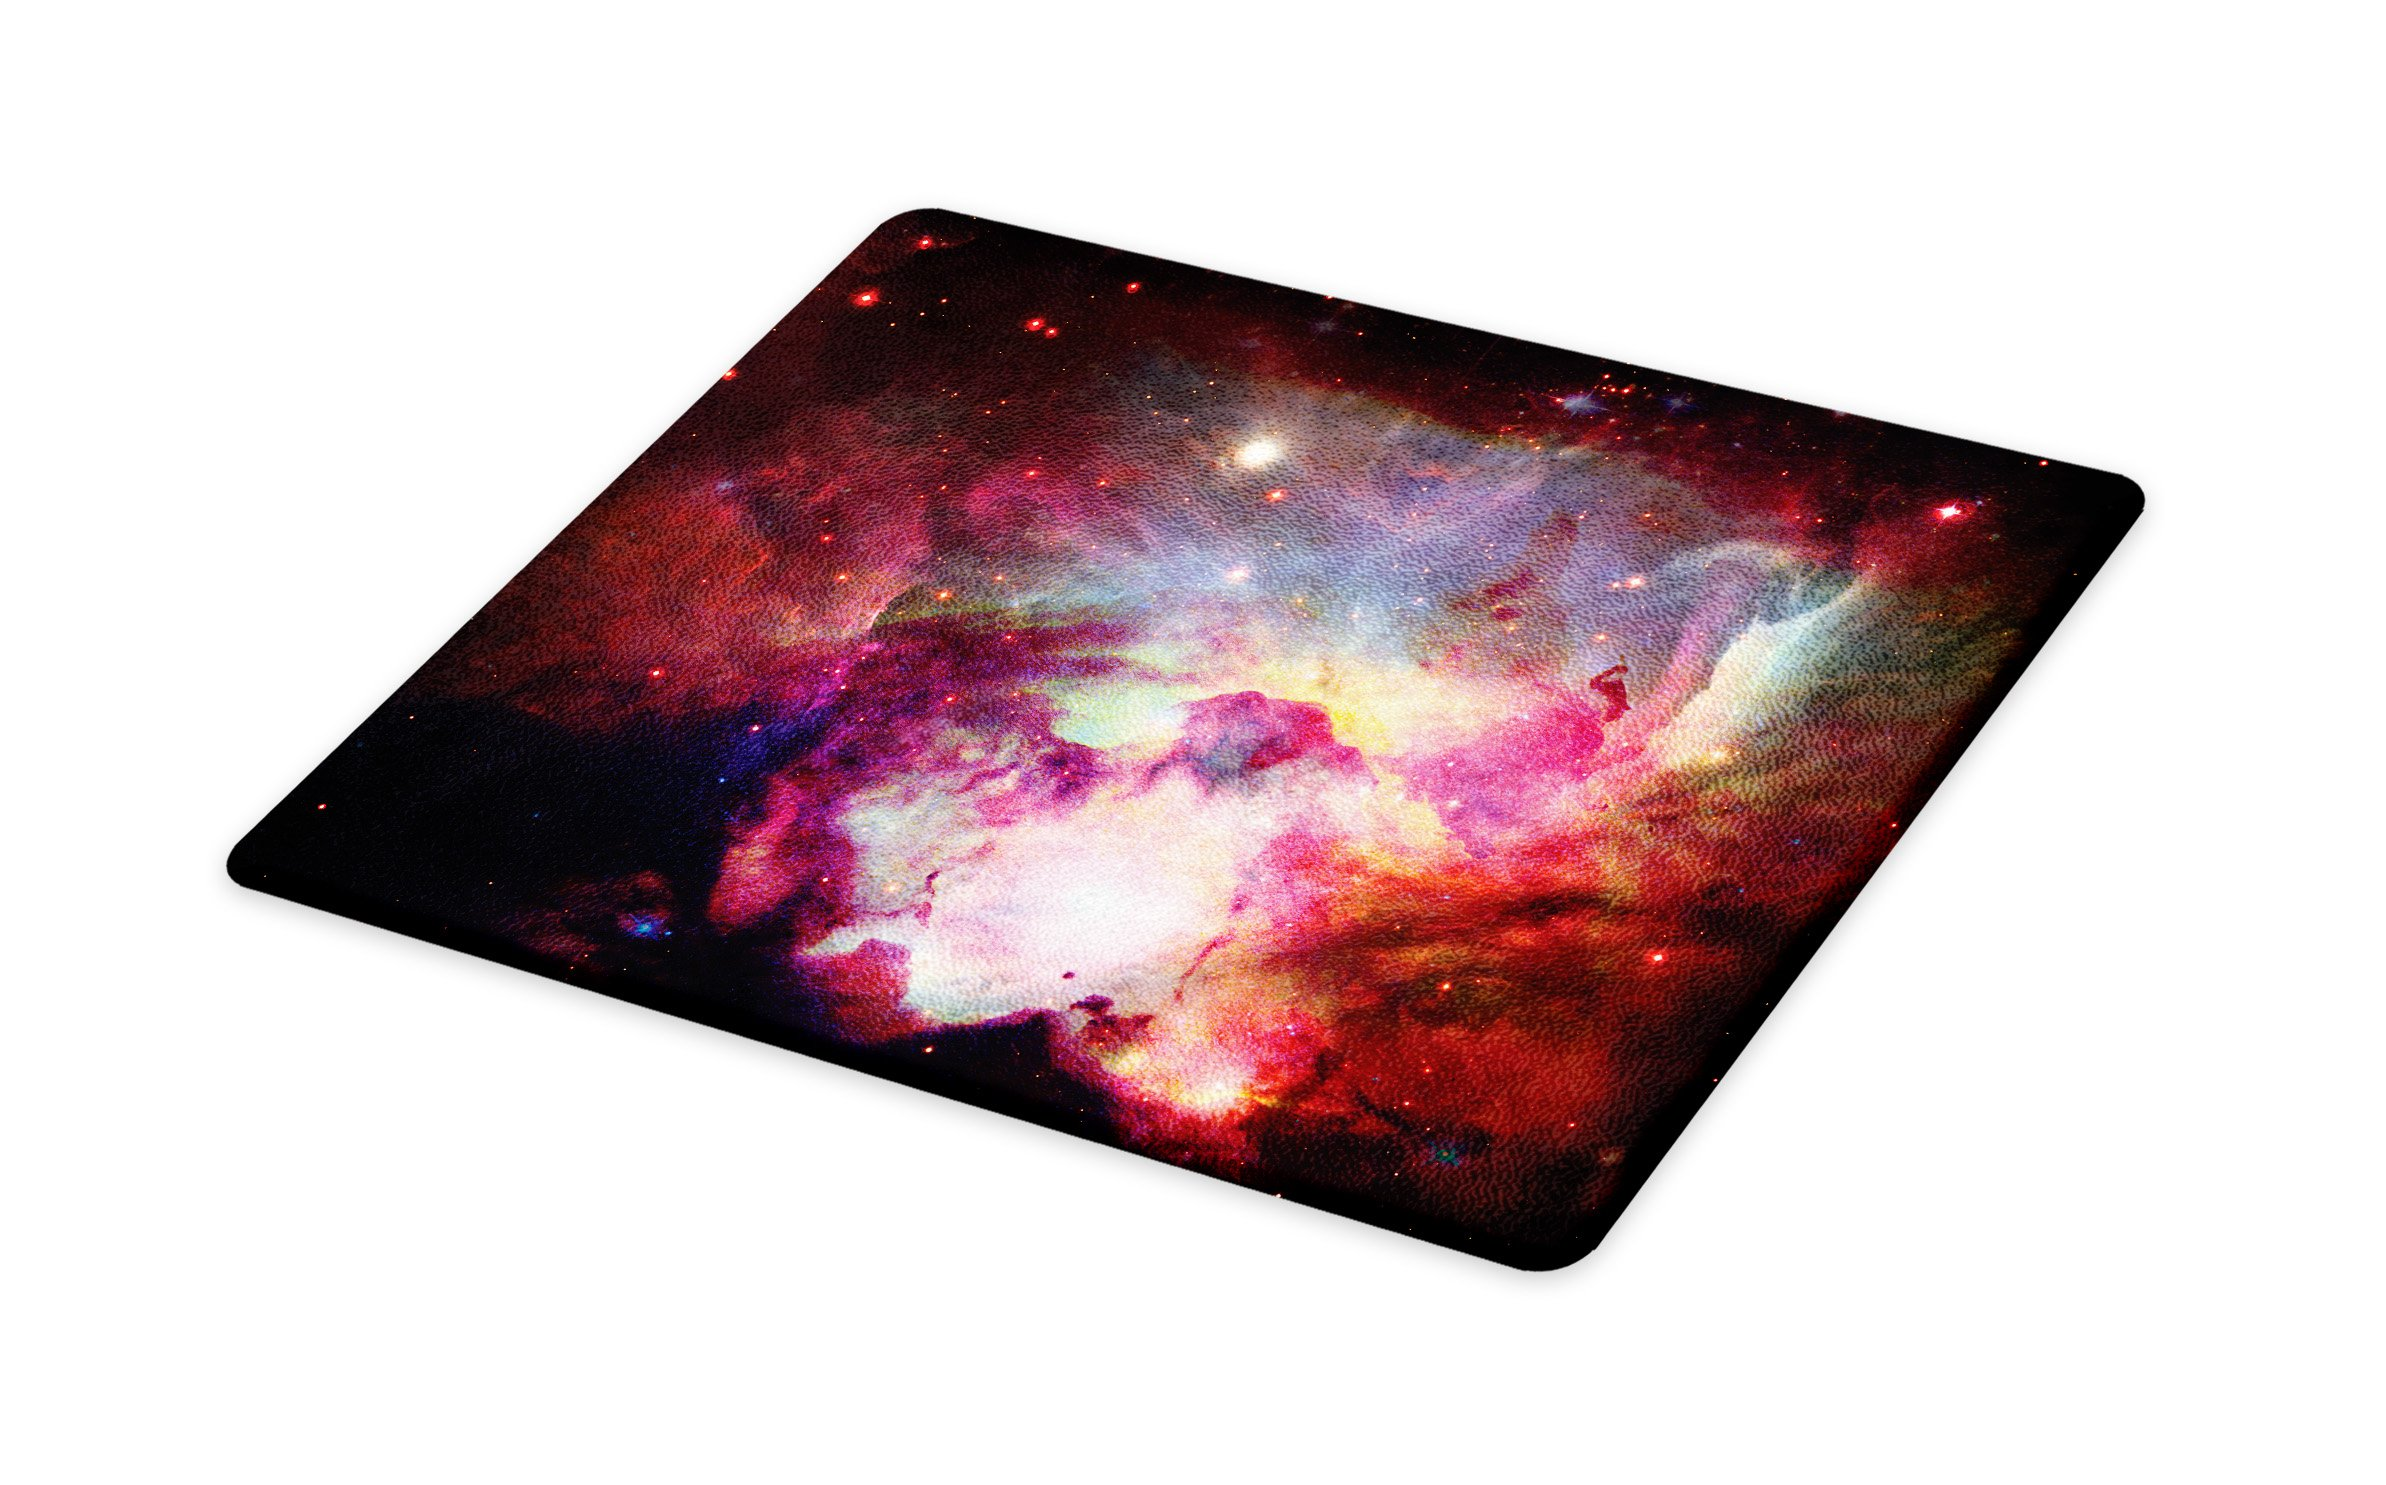 Lunarable Outer Space Cutting Board, Image of Magical Gas Cloud Nebula in Outer Space with Galaxy Solar Zone Print, Decorative Tempered Glass Cutting and Serving Board, Small Size, Purple Red